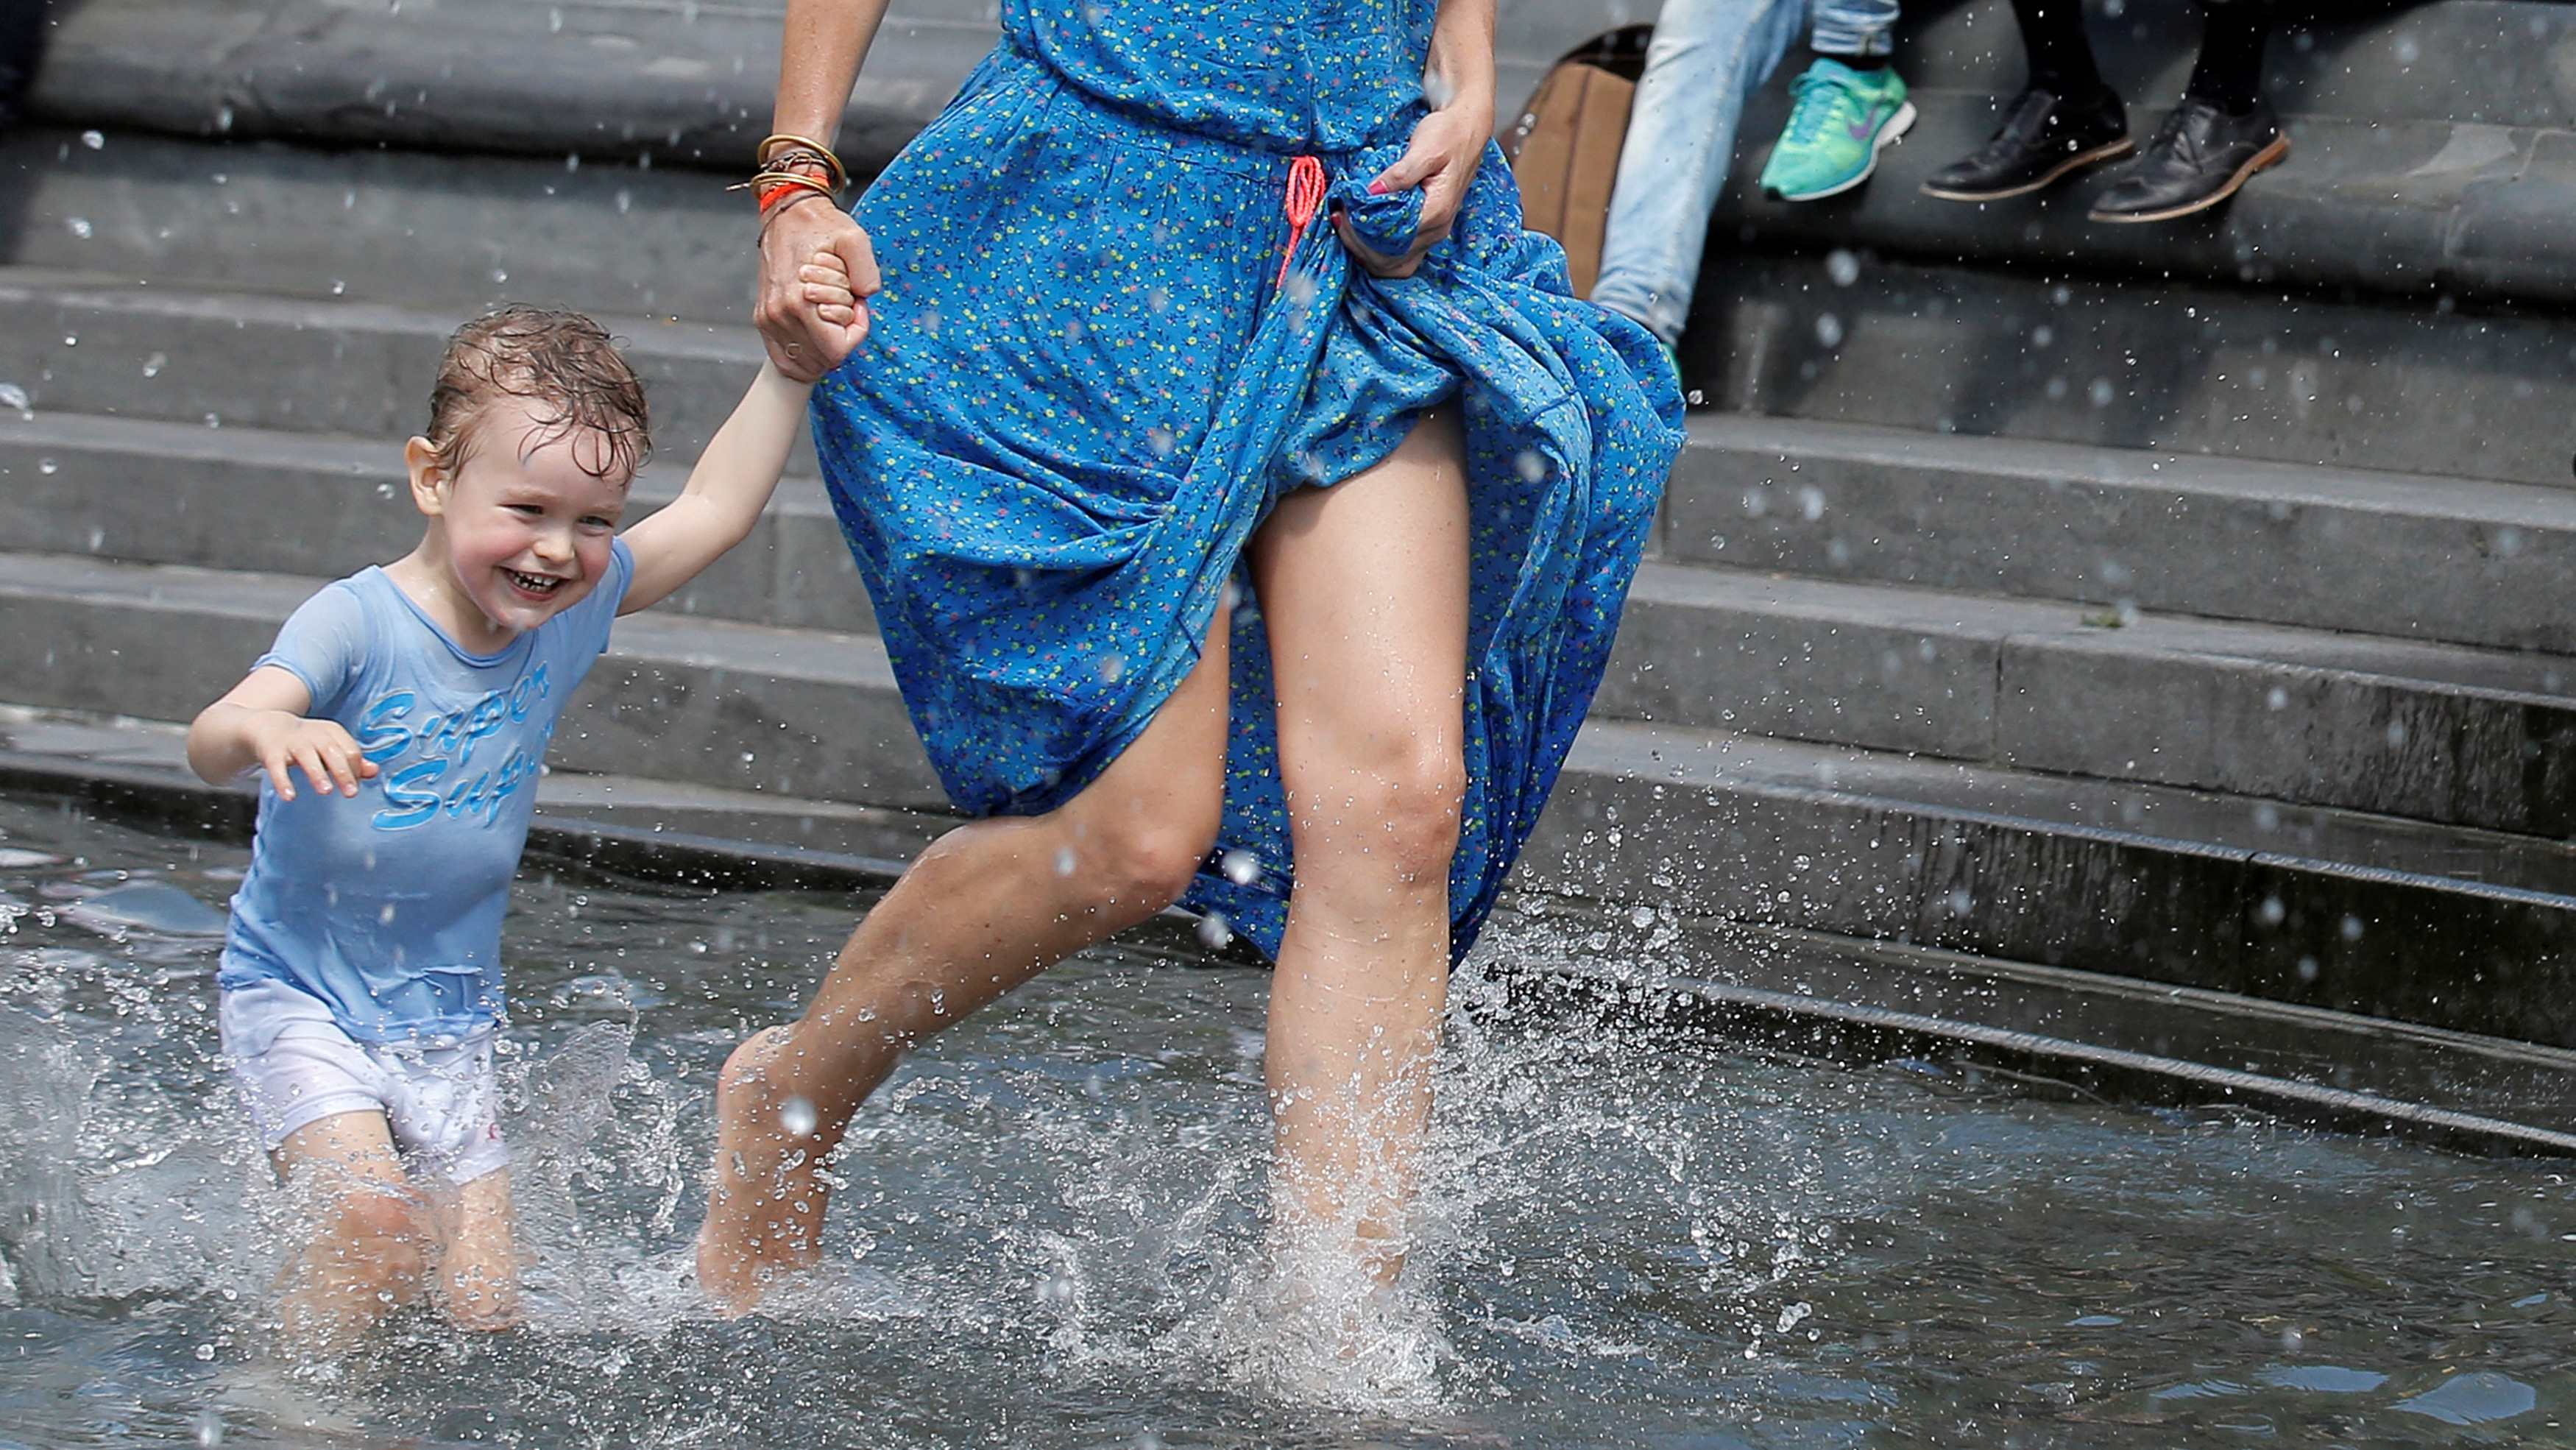 A woman plays with her child in a fountain.